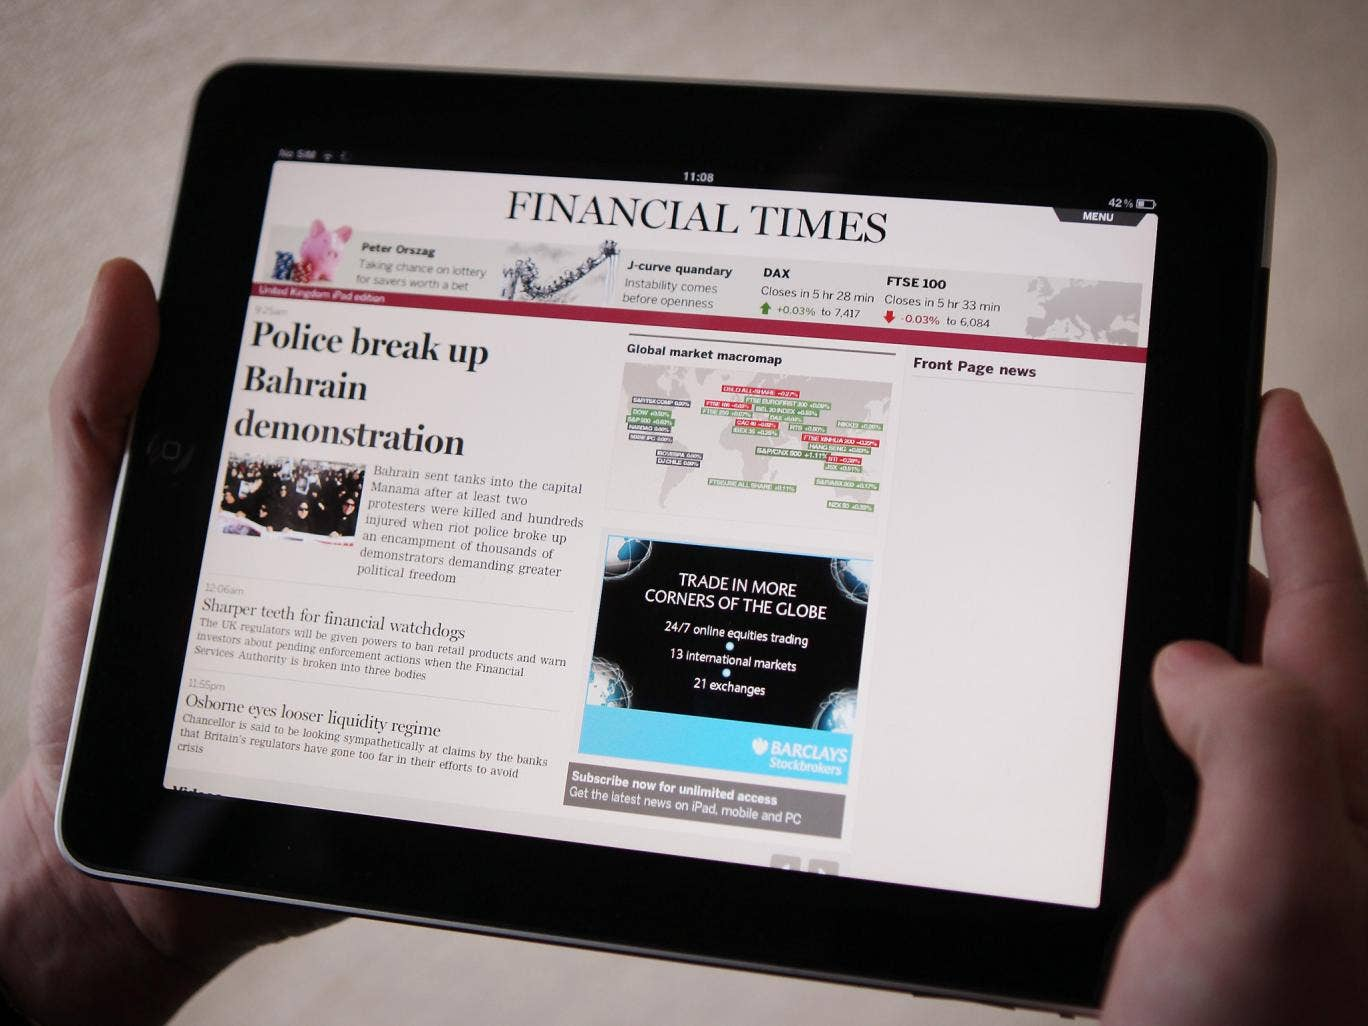 The Financial Times' tech blog and Twitter account were hacked by the Syrian Electronic Army